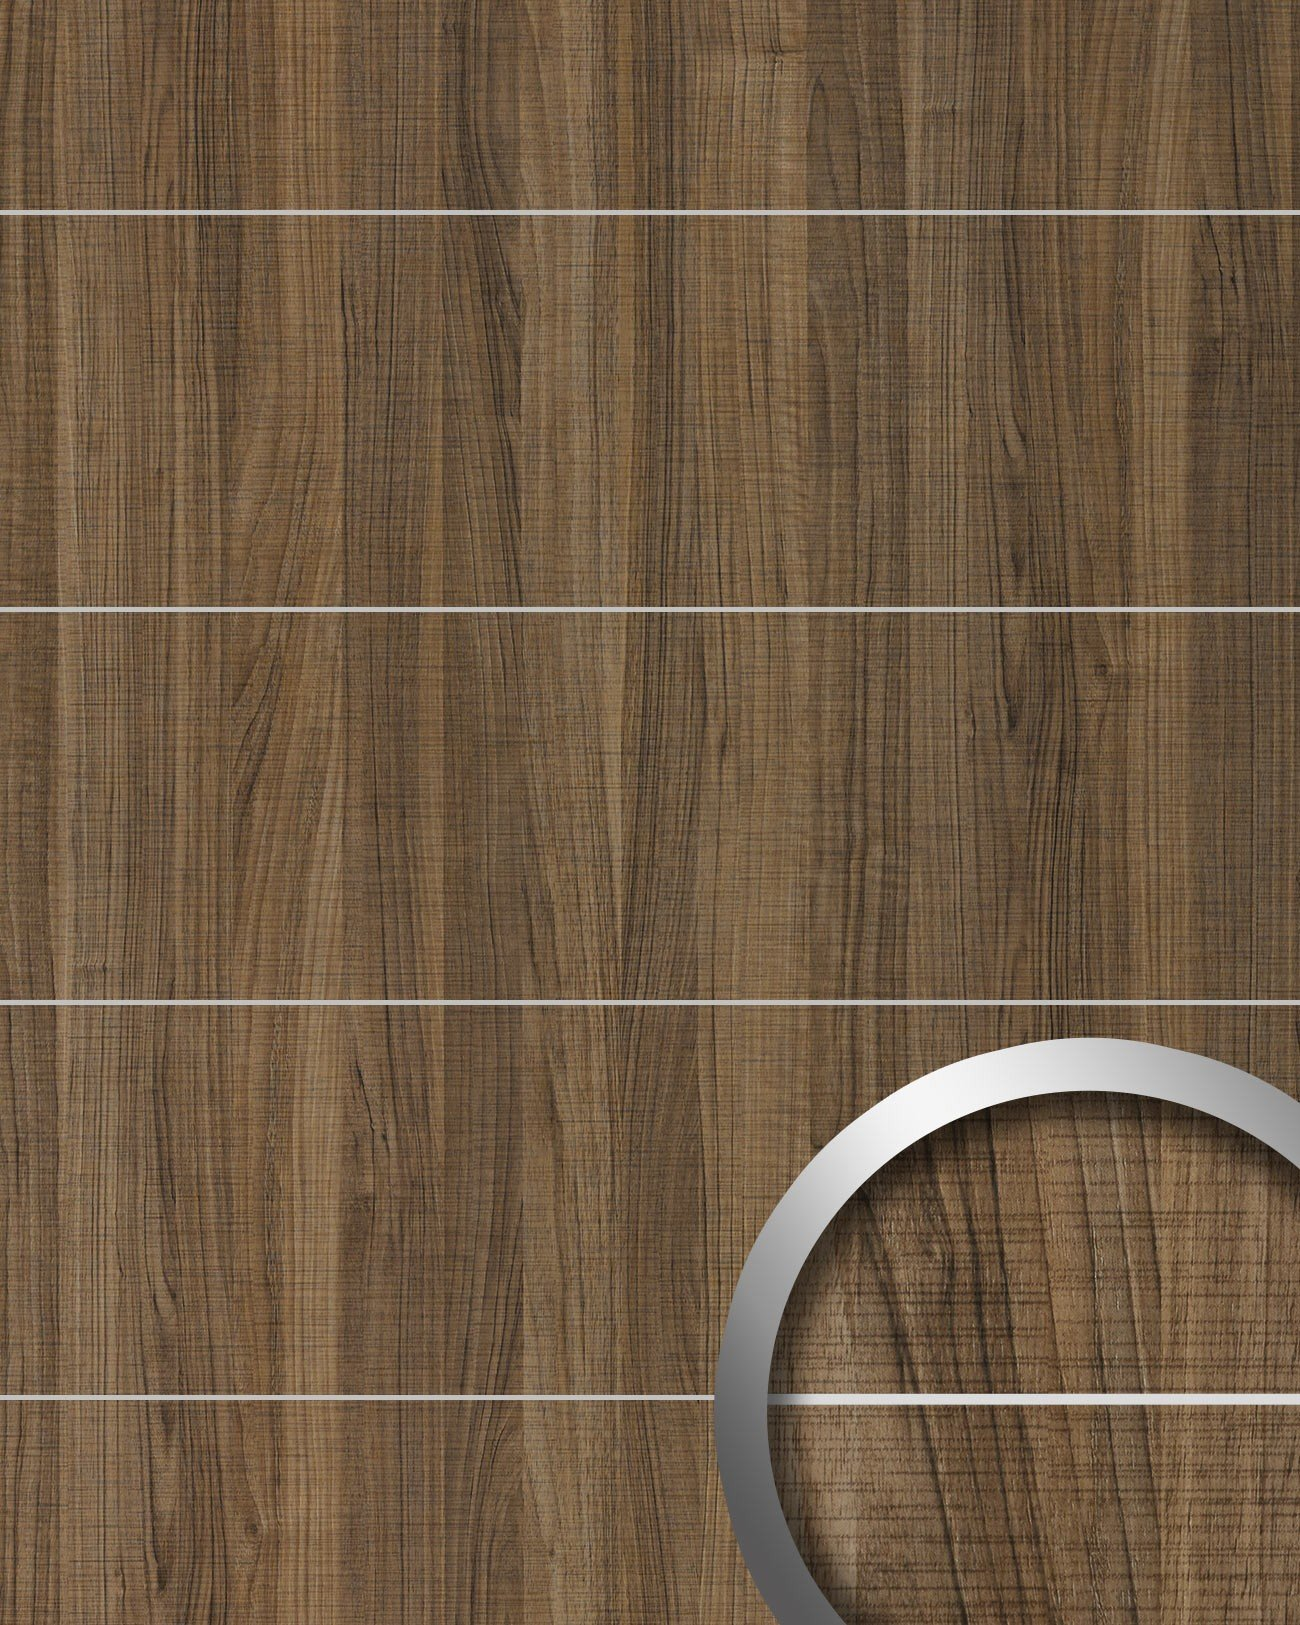 Wall panel wood look WallFace 19100 NUTWOOD COUNTRY 8L walnut wood decor brushed metal strips self-adhesive wall panelling brown | 28 sq ft (2.60 sqm)